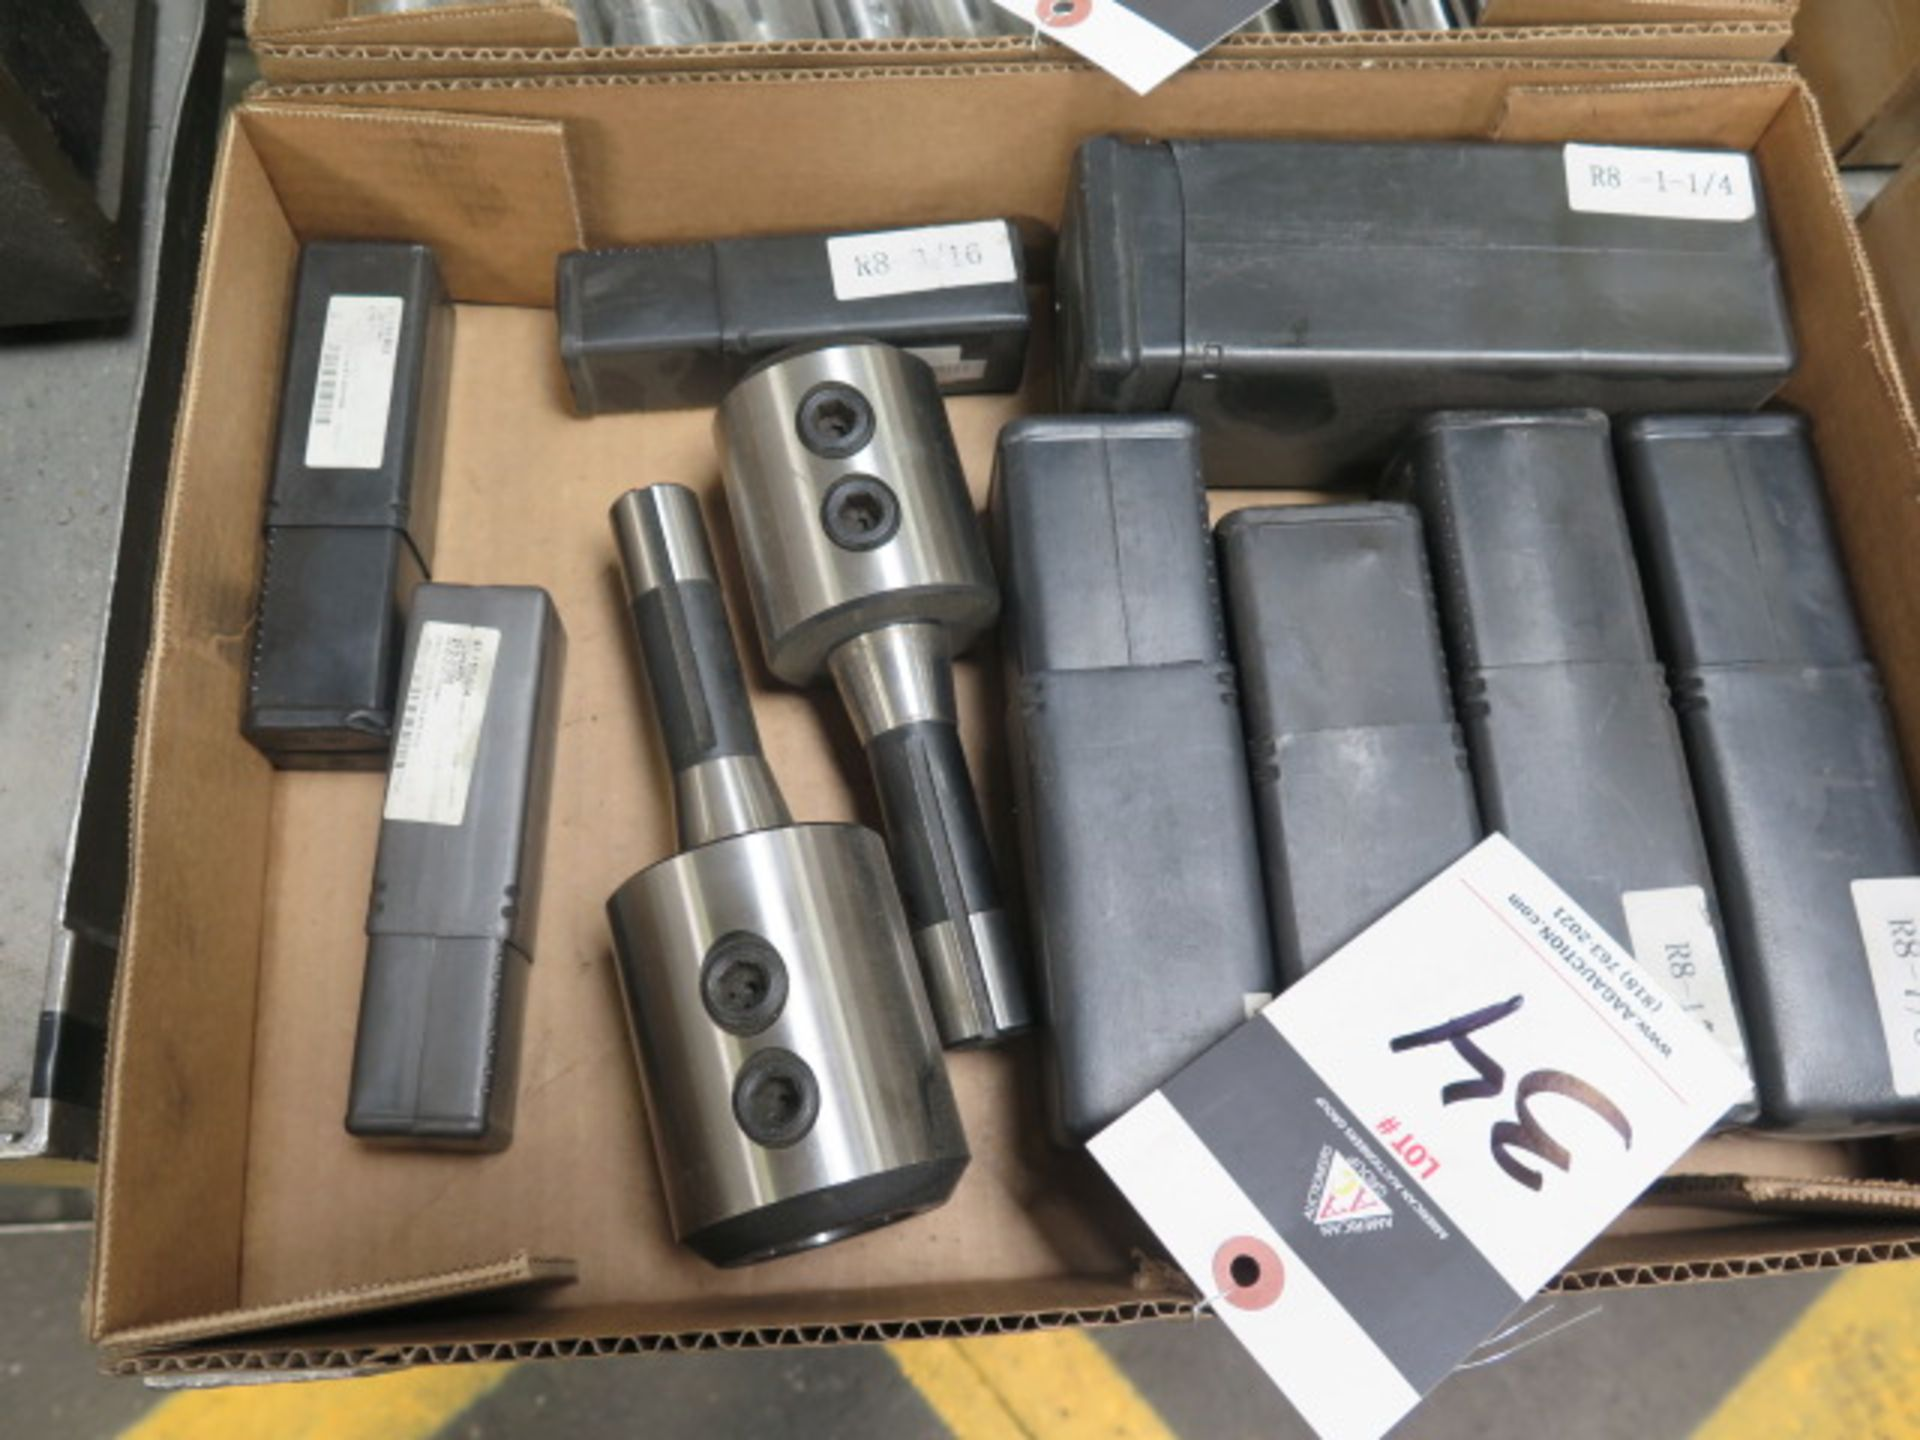 Lotto 34 - R8 Tooling (10 - NEW)